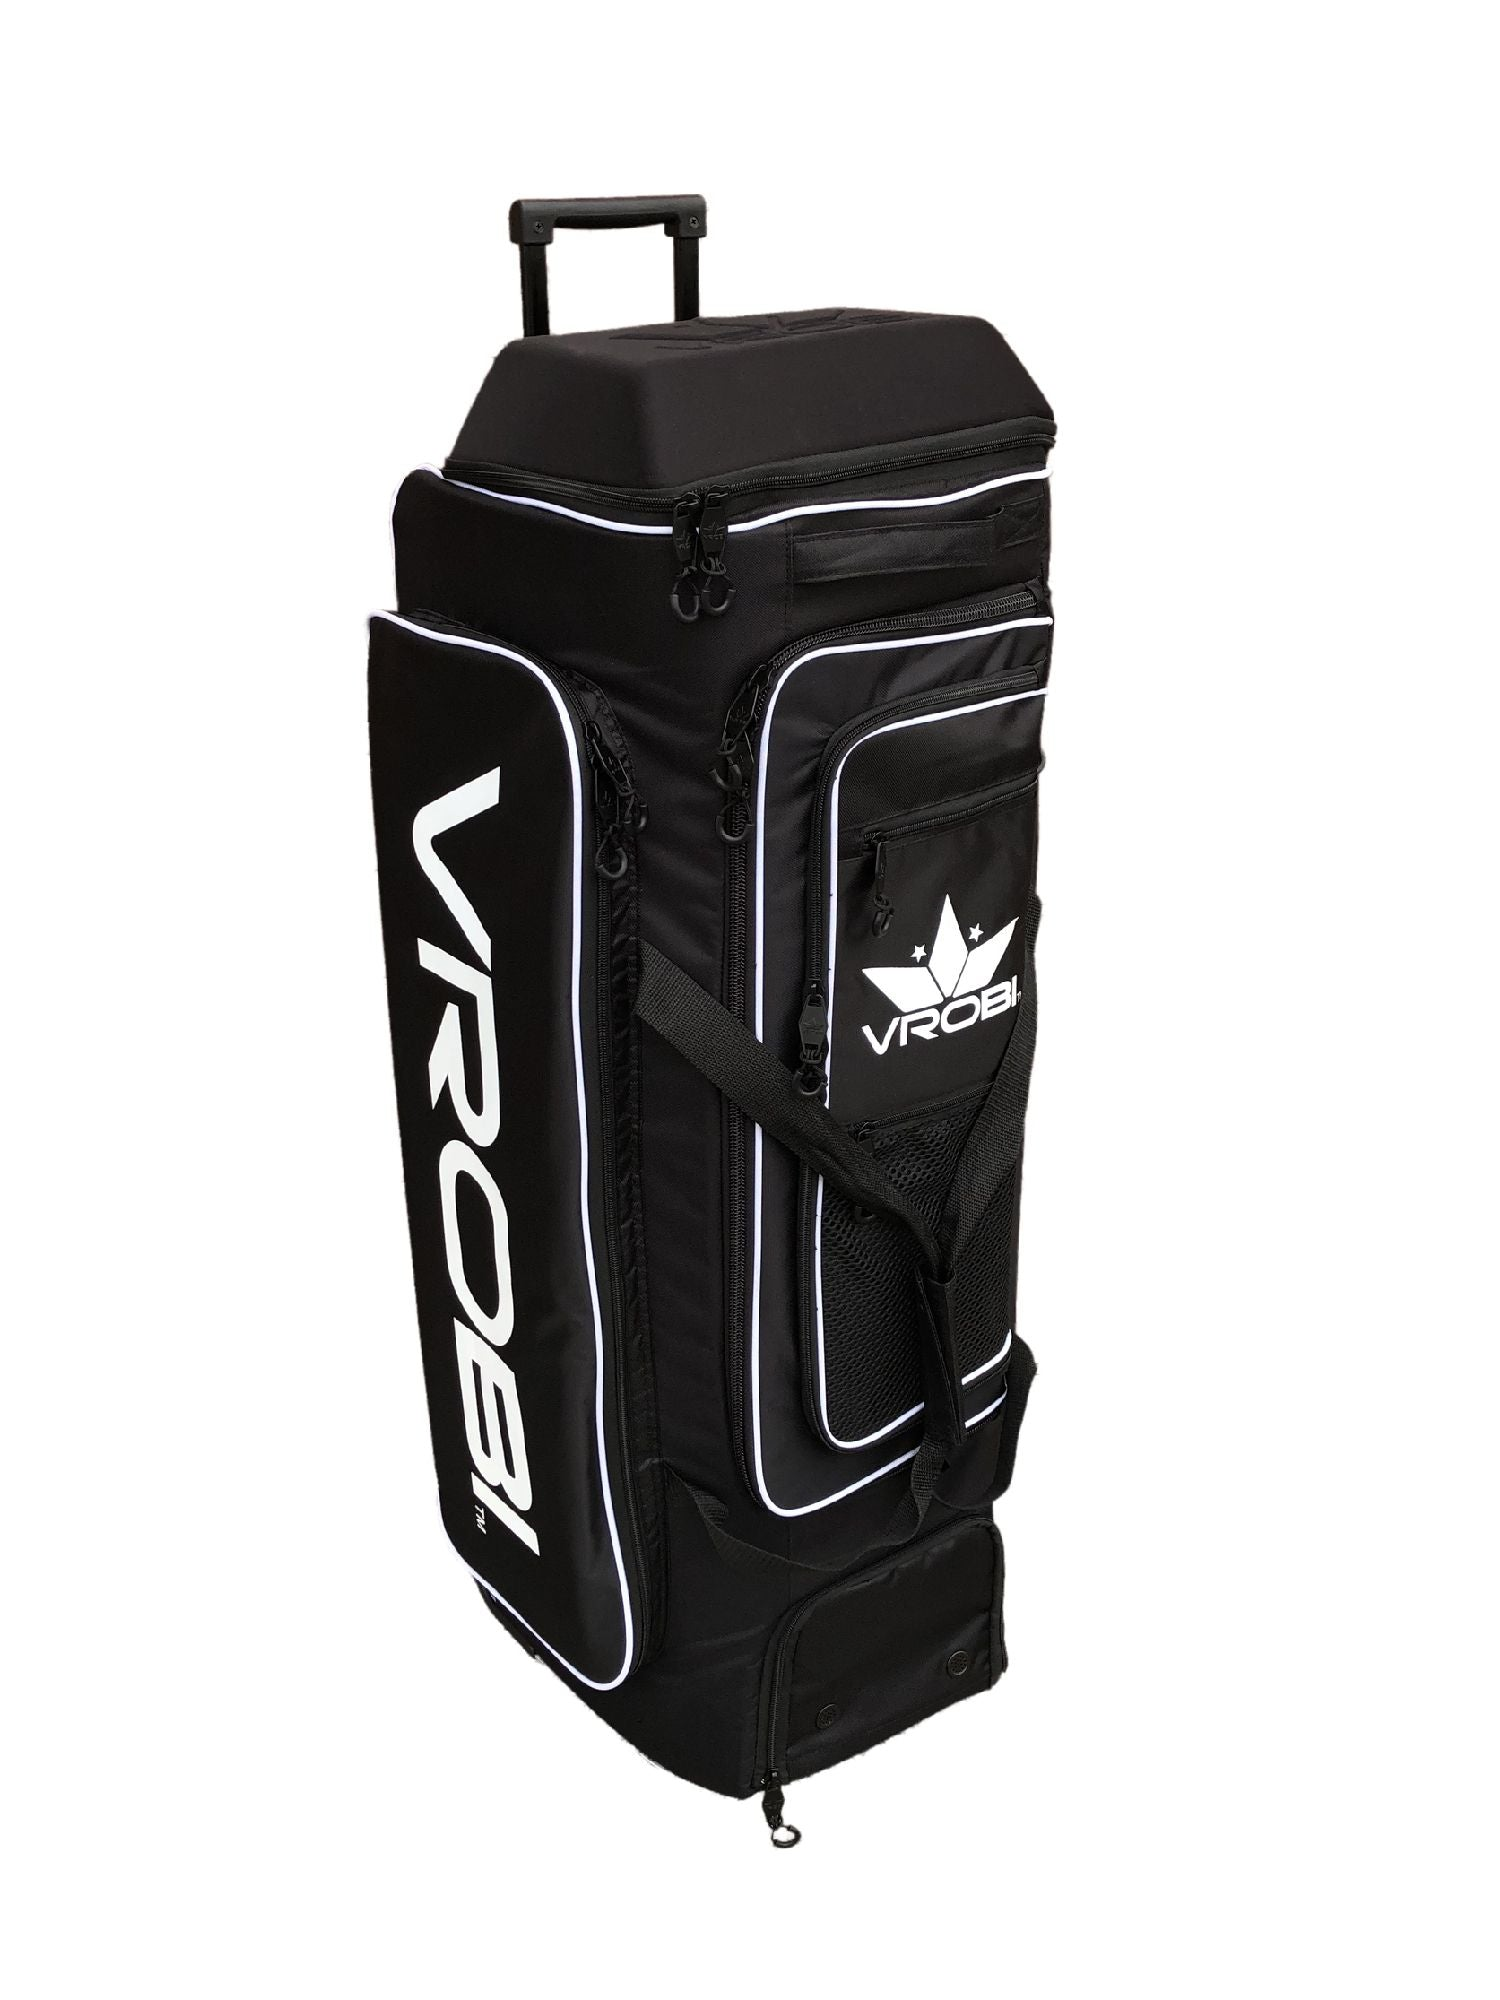 Infantry HS Wheeled Bag designed for Baseball Catchers, Fastpitch Softball Catchers, Slowpitch Softball Players.